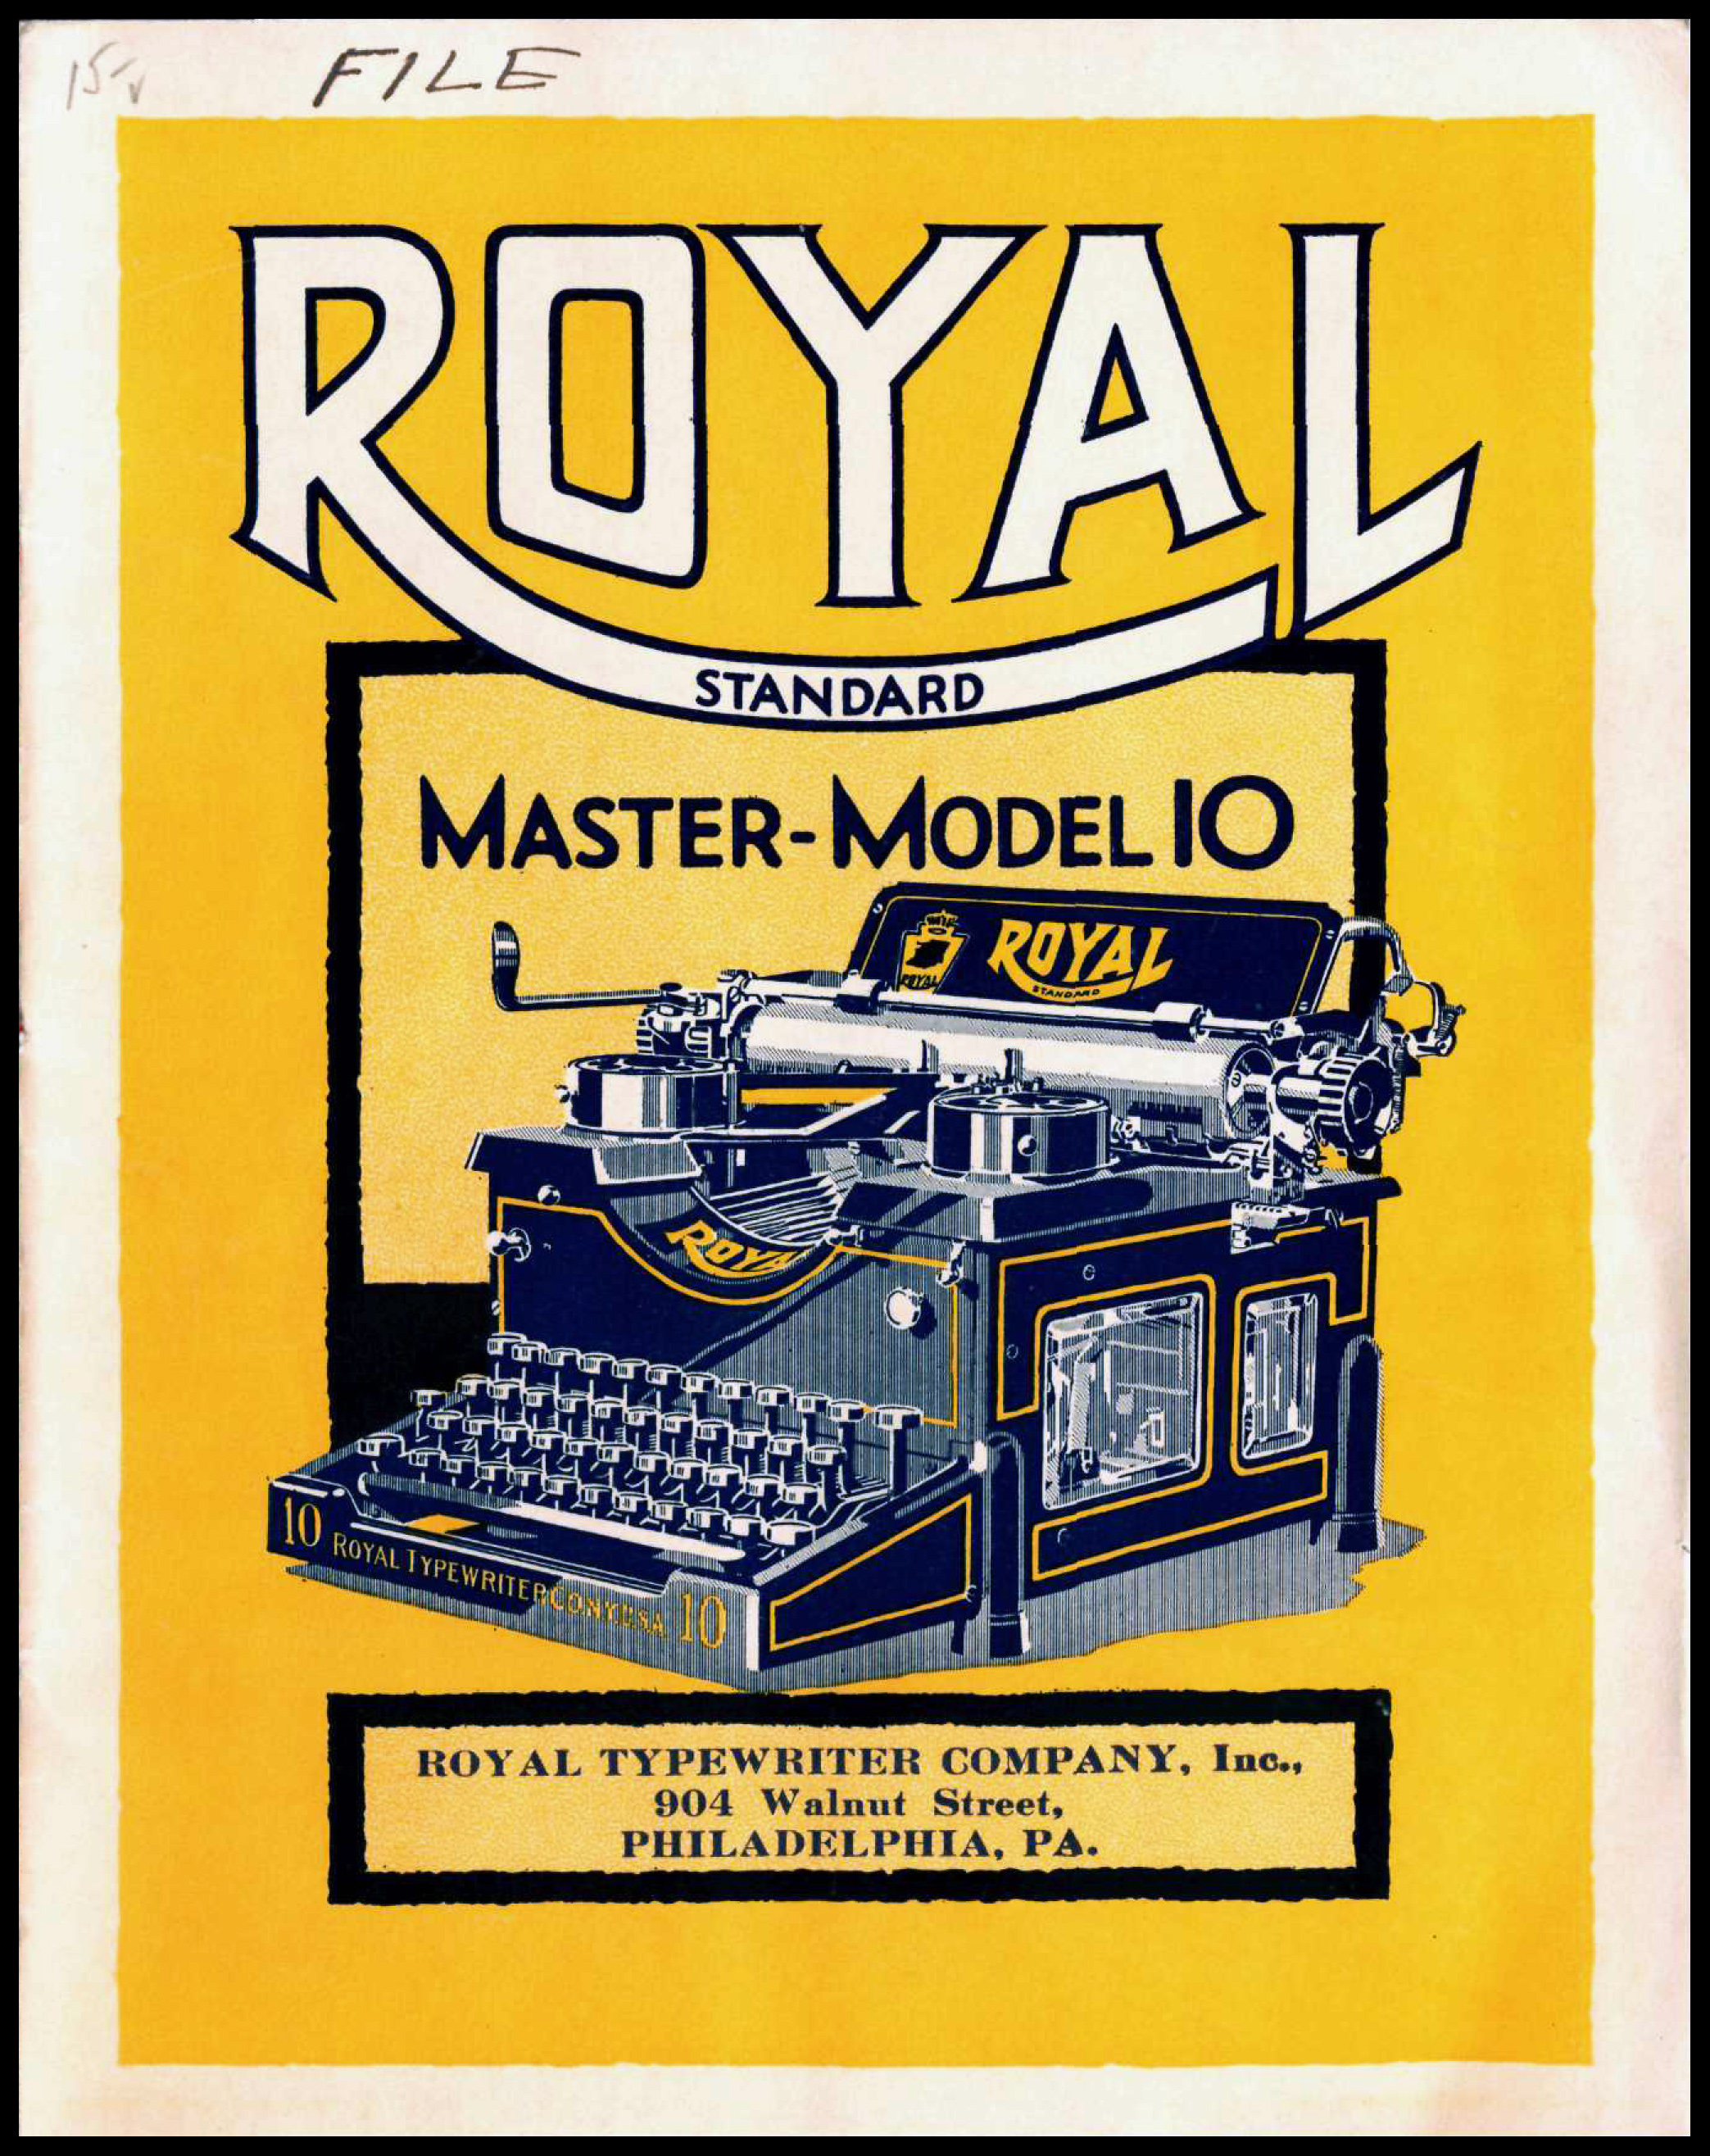 Cover of a typewriter catalog featuring an illustration of a typewriter on a yellow background